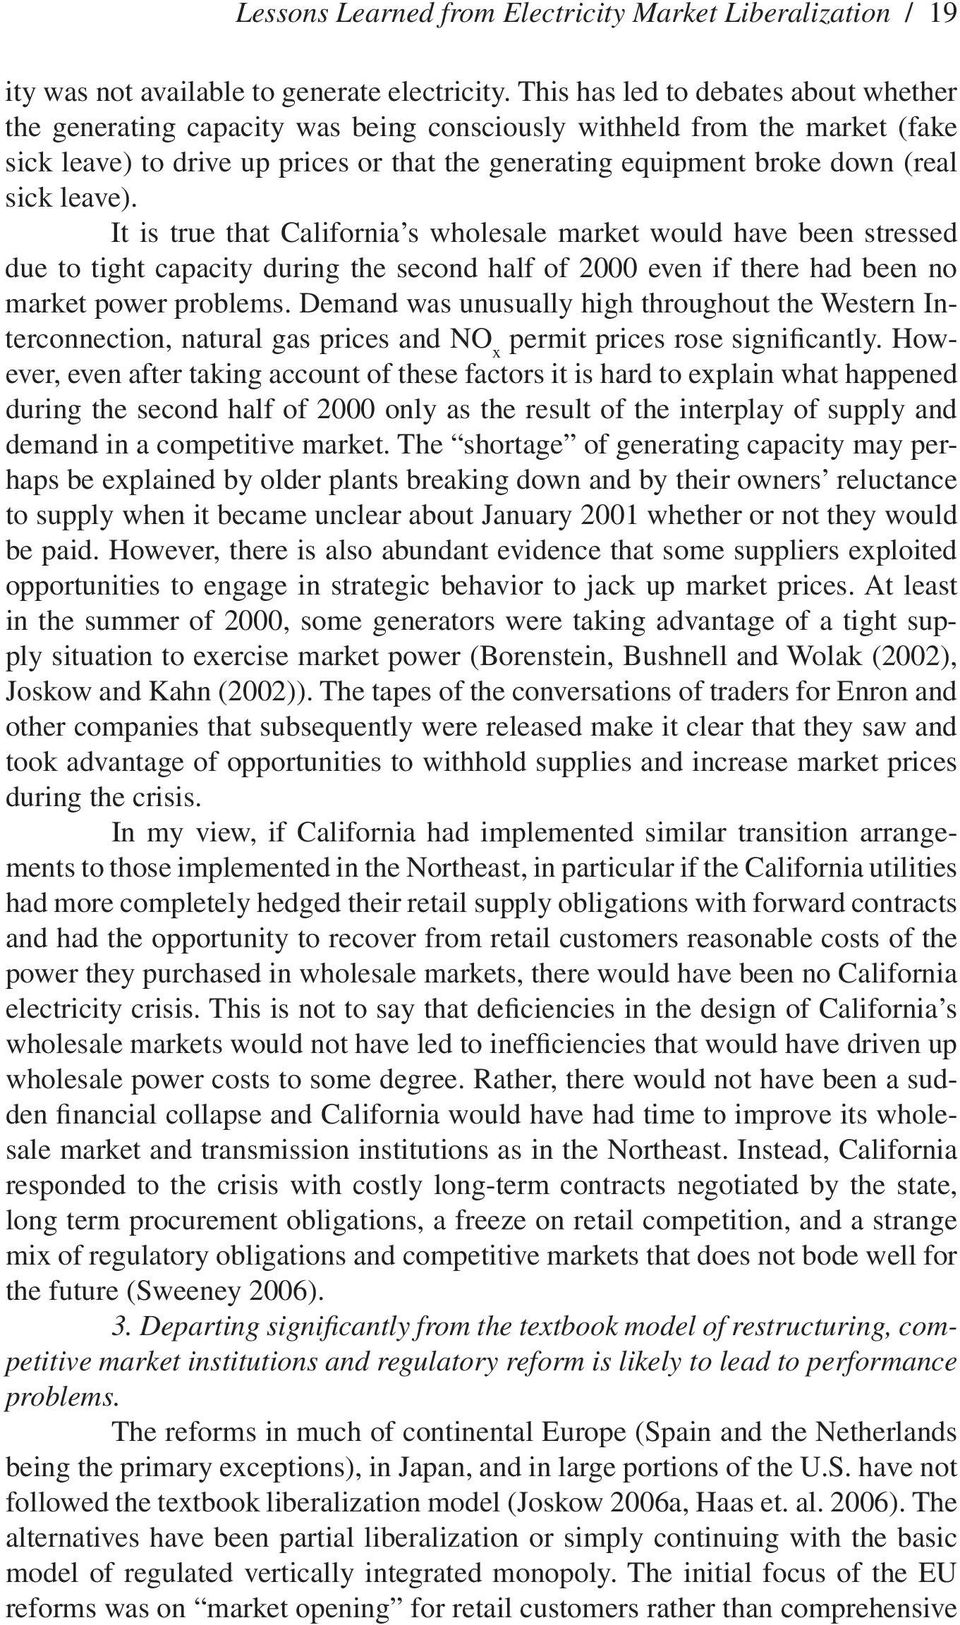 sick leave). It is true that California s wholesale market would have been stressed due to tight capacity during the second half of 2000 even if there had been no market power problems.